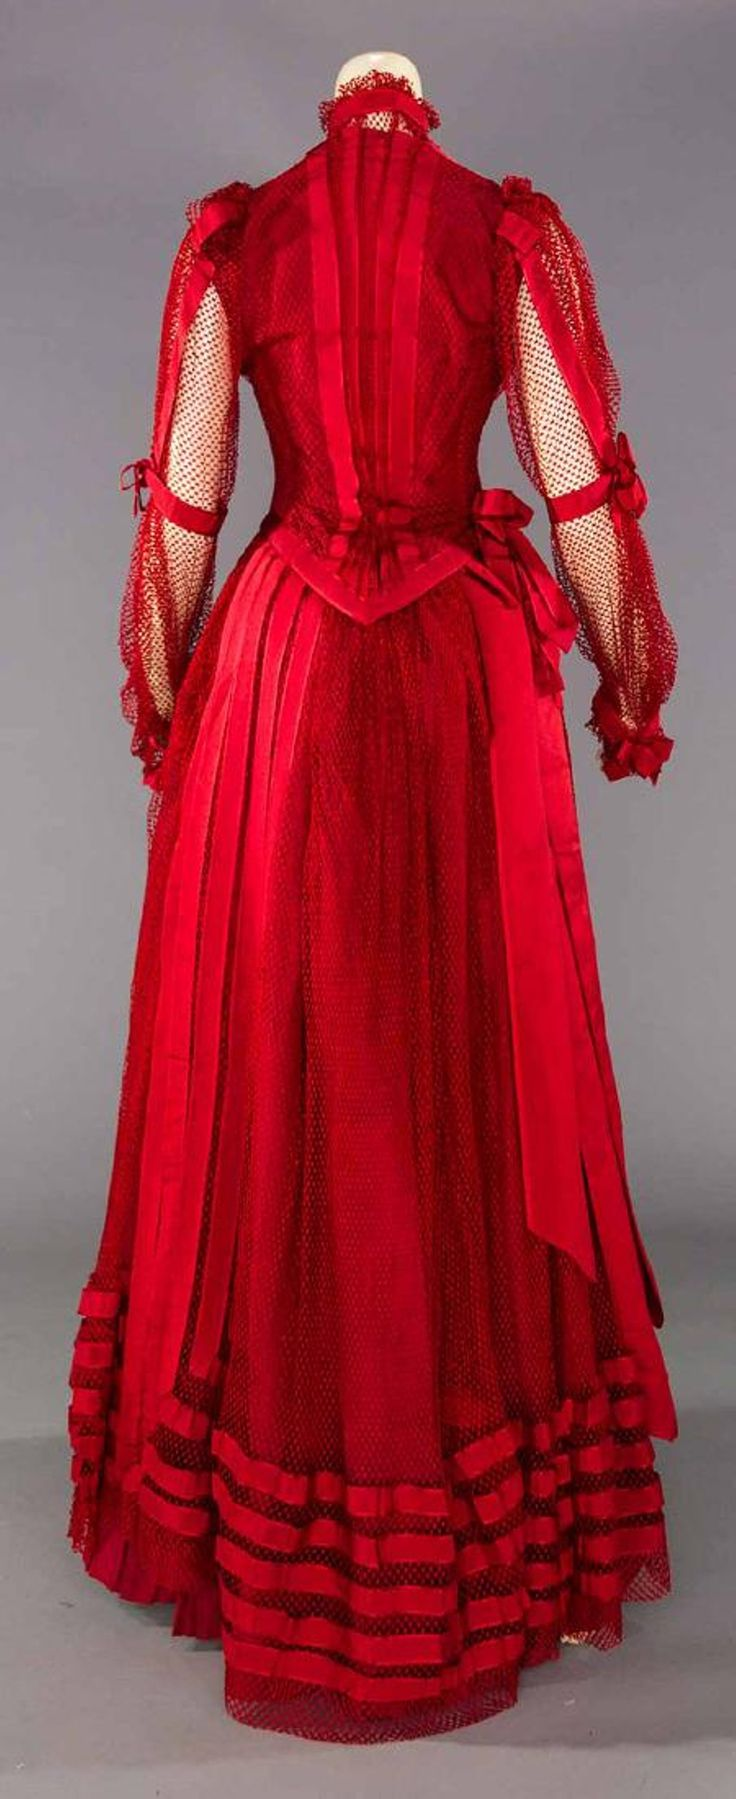 BLOOD RED PARTY GOWN, PITTSBURG, PA. c. 1890 - 4